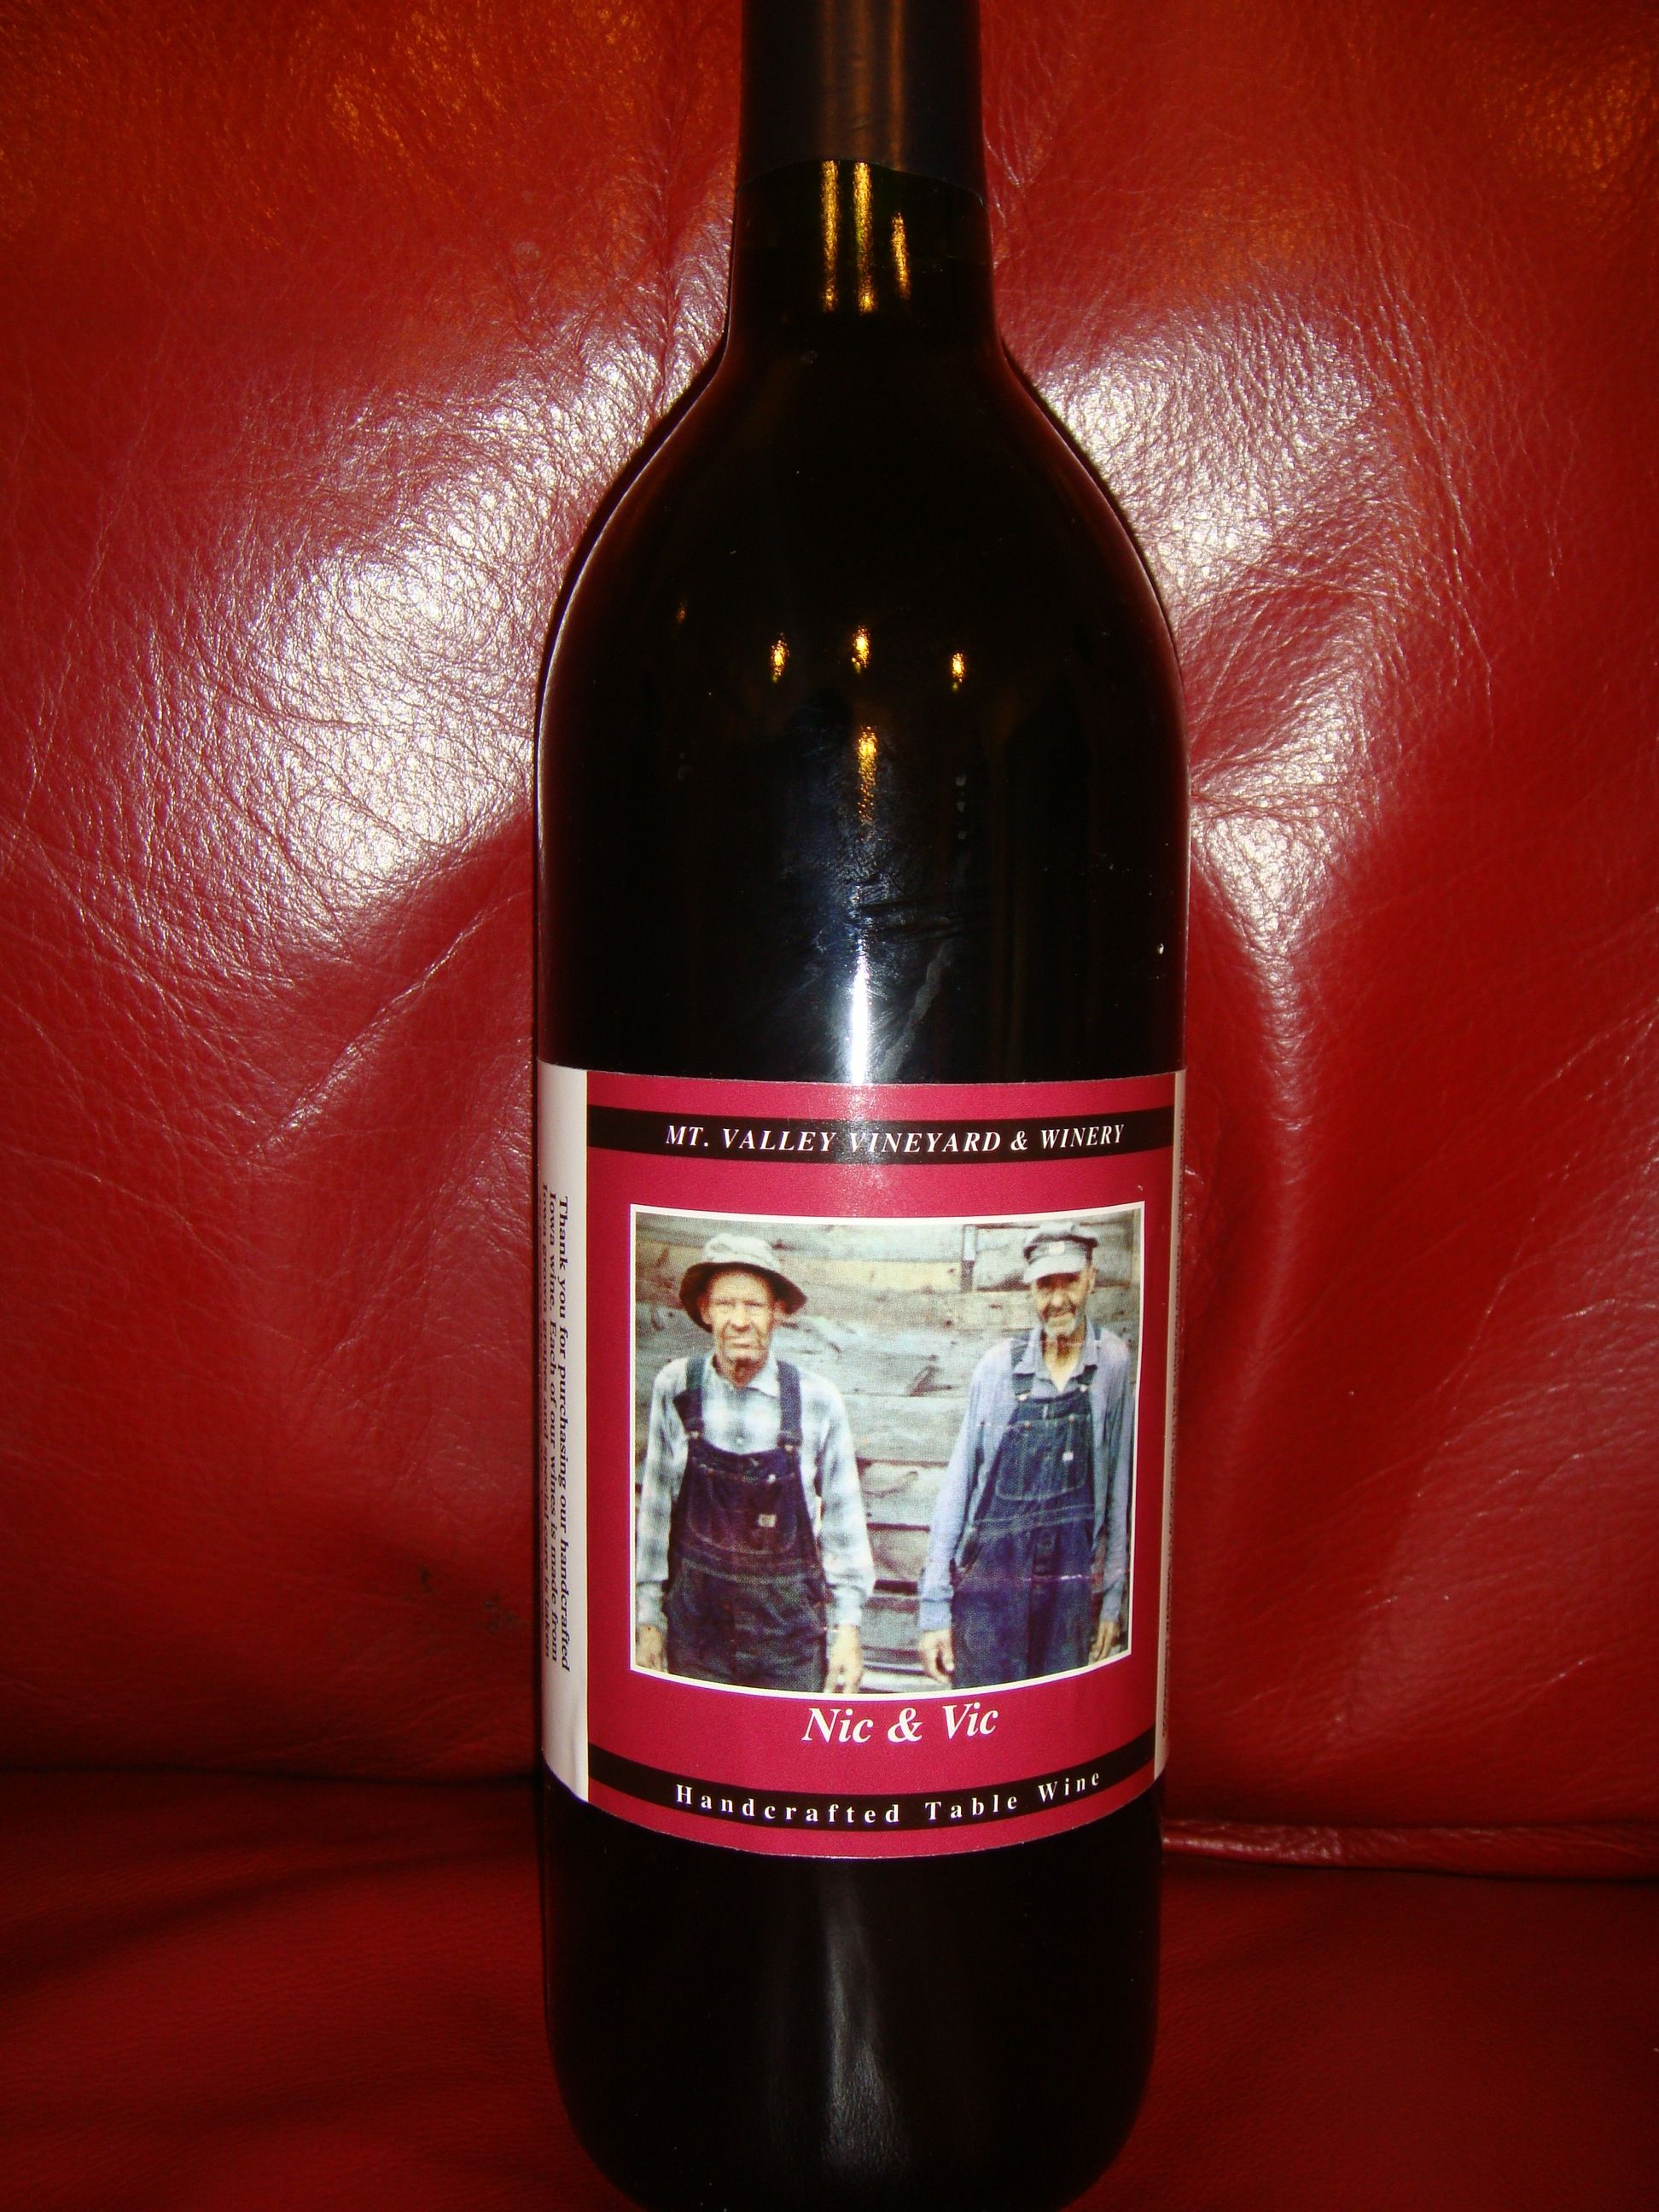 Nic Vic Wine By Mt Valley Vineyard Winery In Forest City Iowa Wine Bottle Wine Winery